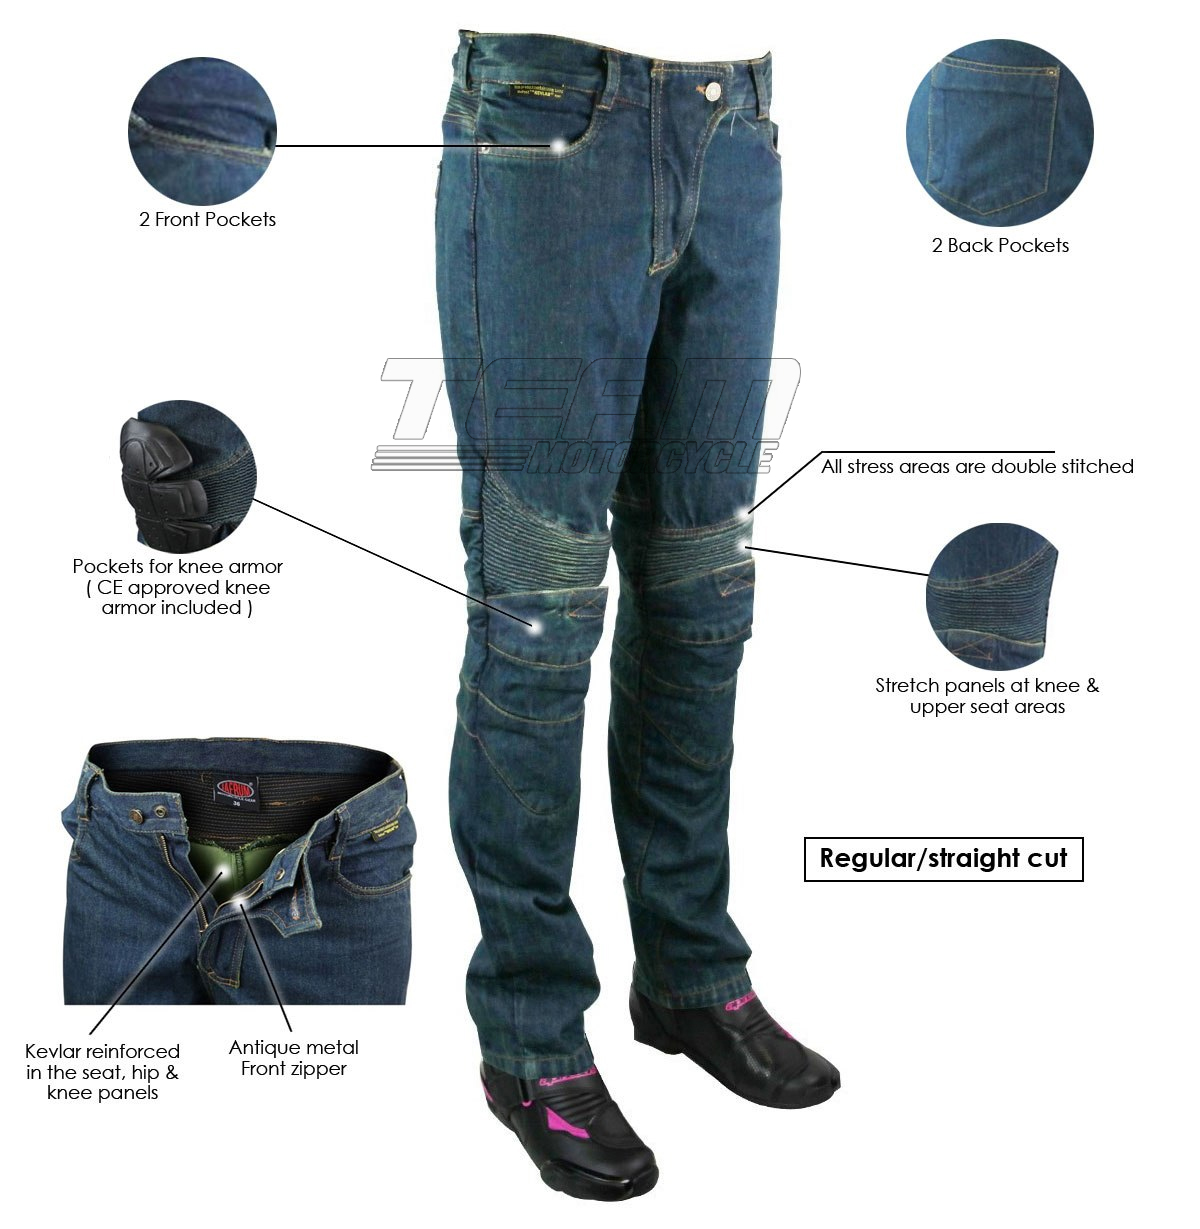 womens-denim-motorcycle-pants-with-ce-armor-and-kevlar-infographics.jpg